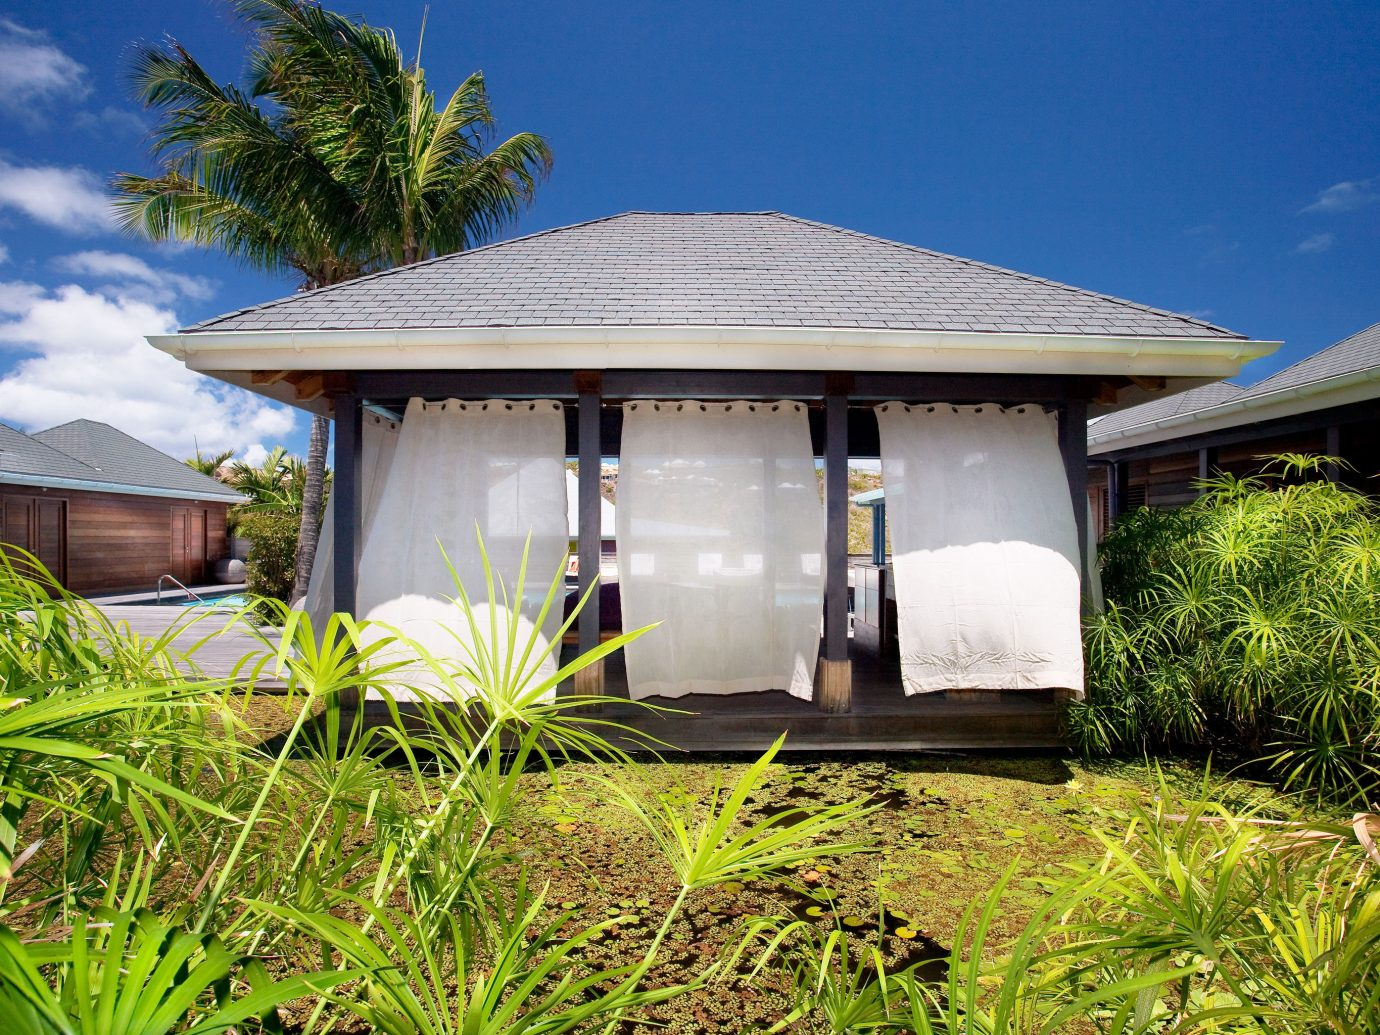 Penthouse Trip Ideas Tropical outdoor grass sky building house home hut estate cottage rural area shack real estate backyard shed Villa outdoor structure